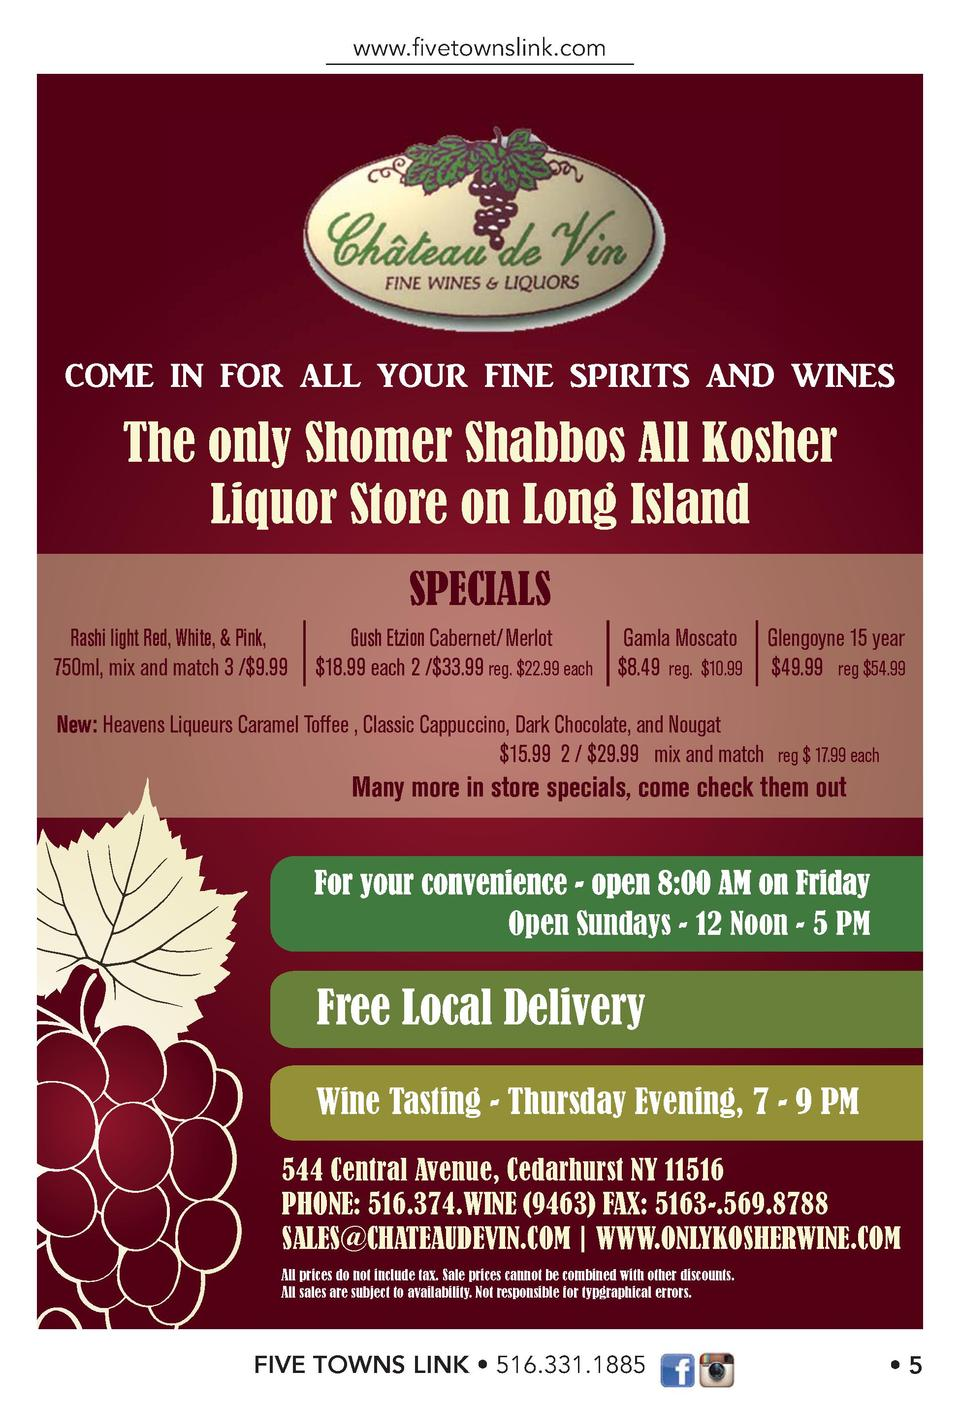 www.   vetownslink.com  COME IN FOR ALL YOUR FINE SPIRITS AND WINES  The only Shomer Shabbos All Kosher Liquor Store on Lo...